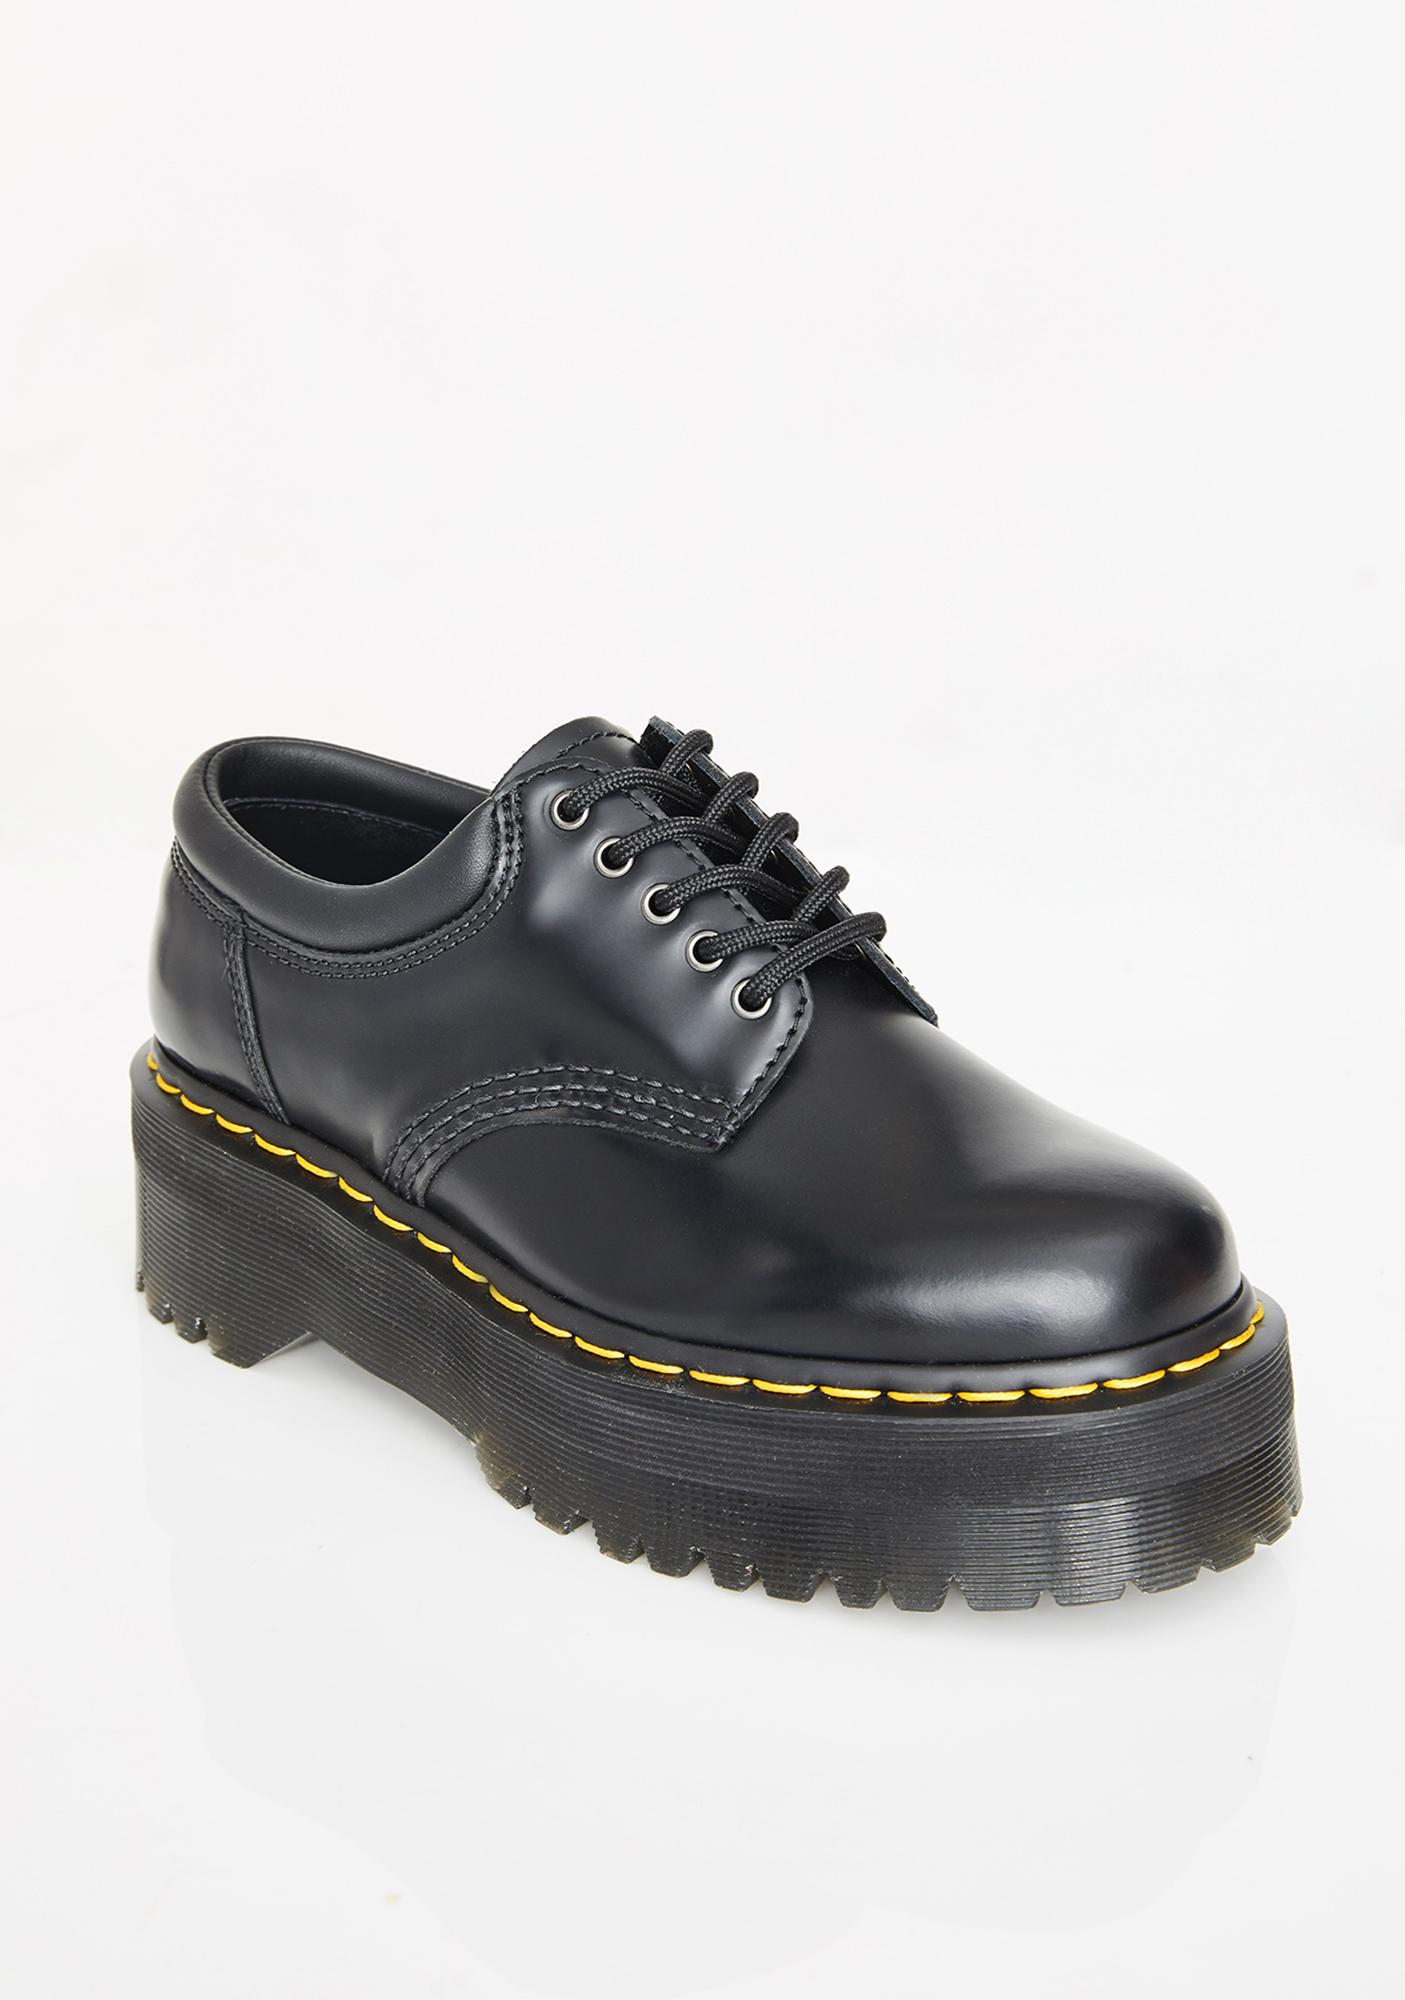 6ca6532ab16 Dr. Martens 8053 Quad Oxfords | Dolls Kill